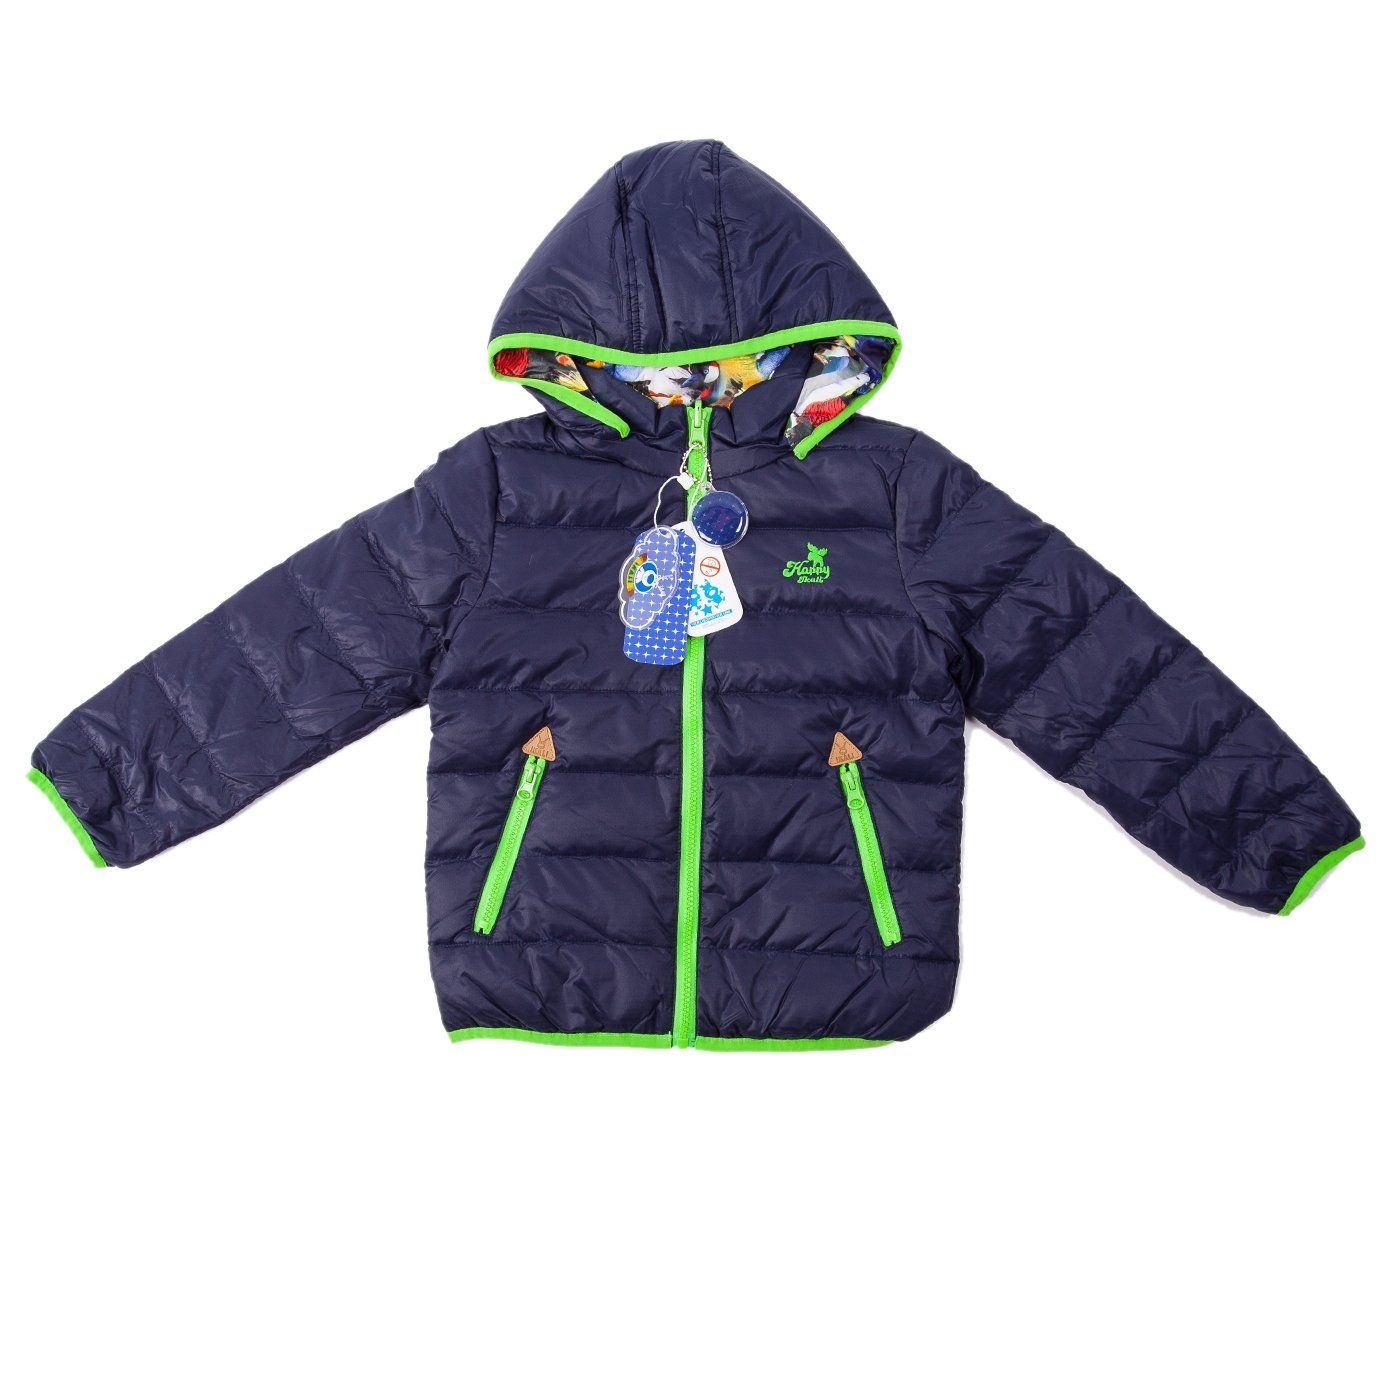 Boys Lightweight Puffer Jacket Lite Double Side Wear Down Jacket With Hood Contrast Pop Color And Embossed By Ikali 4 6y Jackets Puffer Jackets Down Jacket [ 1400 x 1400 Pixel ]